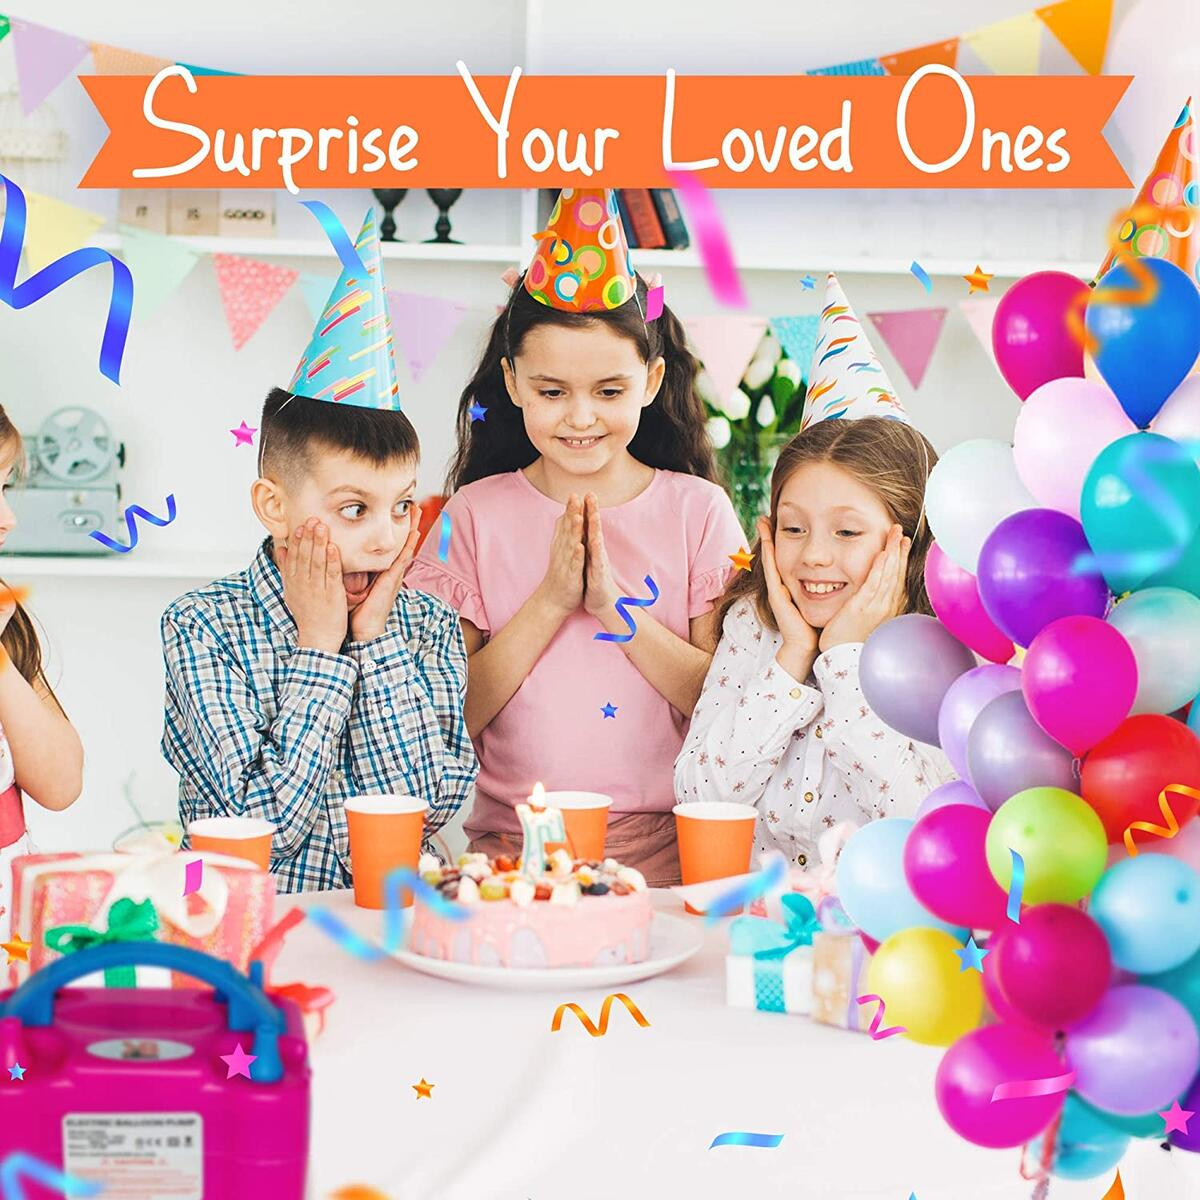 Balloon Pump Kit, Electric Balloon Air Pump, Balloon Inflator Pump Electric 110V 600W Portable Dual Nozzles Ballon Pump with 80 Balloons, Tying Tool, 10 Flower Clips, Tape Strip, Colored Ribbon and Dot Glues, Birthday Party Balloons…